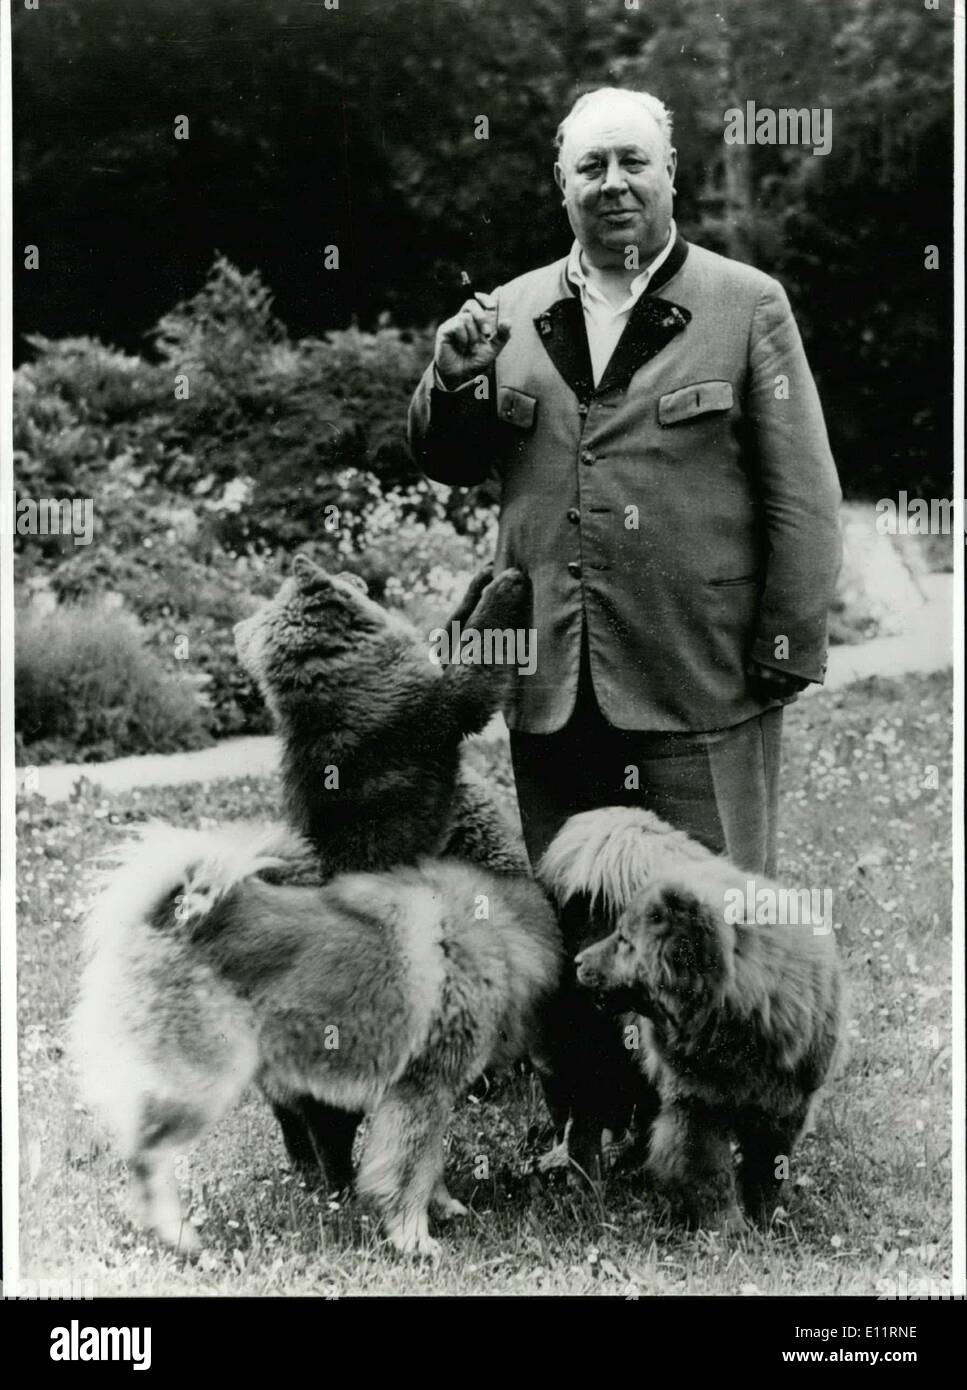 Jan. 02, 1980 - 30th day of death of Emil Jannings:30 years ago, at January 2nd 1950, died, in Strobl at the Lake Wolfgang/Austria, Emil Jannings (photo shows) him with his dogs on his holding in Strobl) one of the most well known German character actors from stage and film. Born at July 26th 1884 in Rorschach/Switzerland he was first cabin boy and then he went as a volunteer to the city-theatre of Goerlitz/West-Germany. At the same time he got first film-offers from well known director Ernst Lubitsch - Stock Image